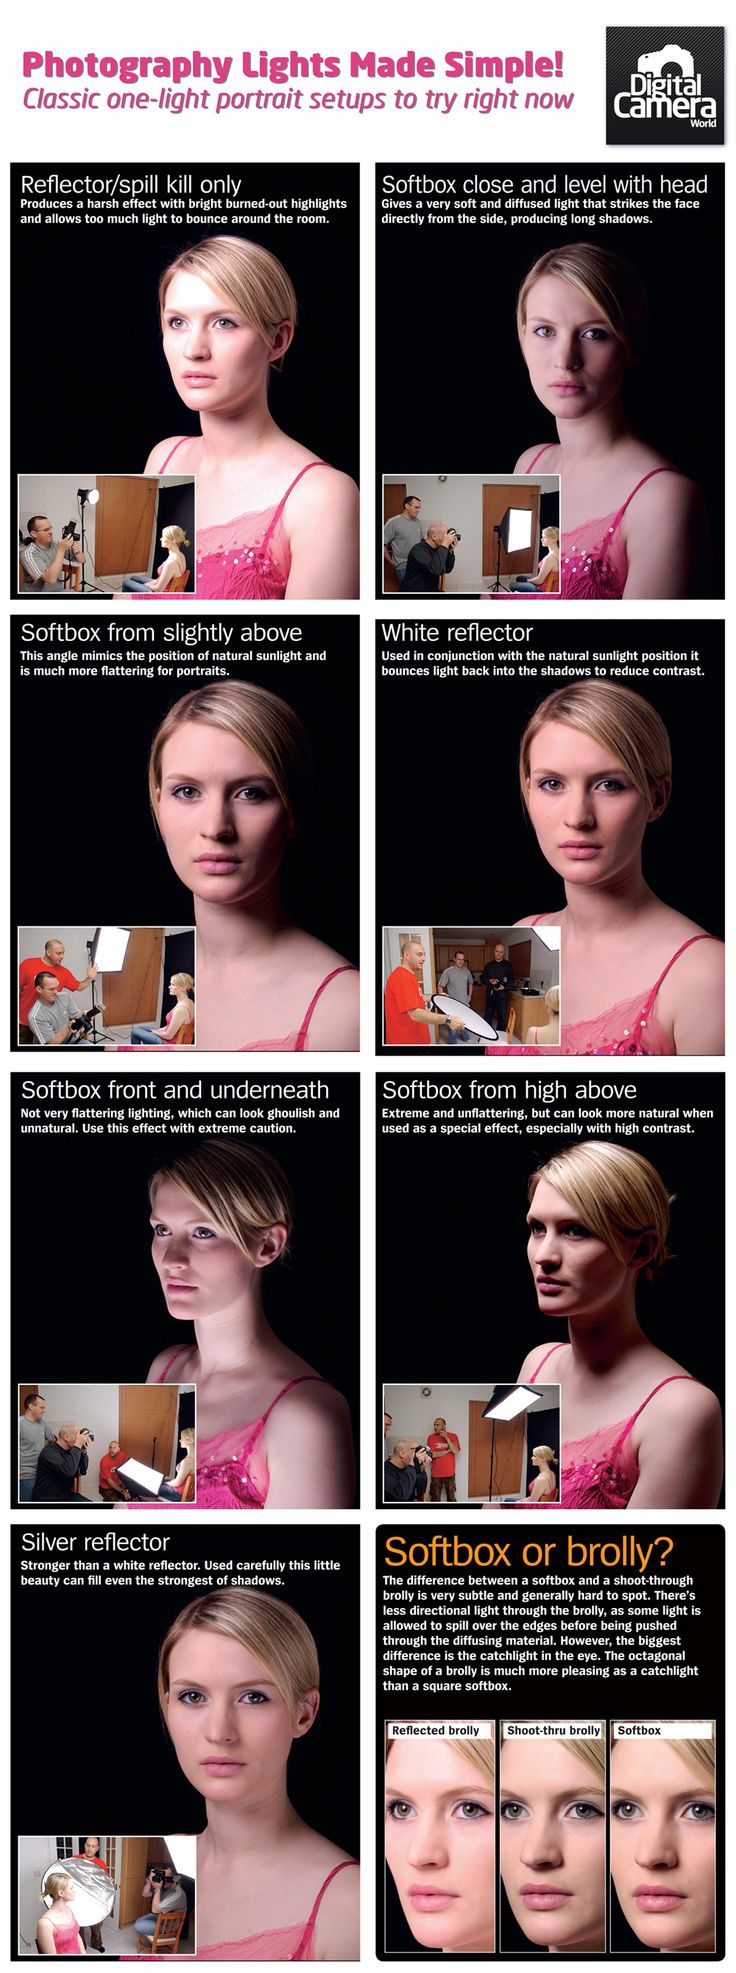 7 Simple Single Light Portrait Setups [Illustrated] - Digital Photography School